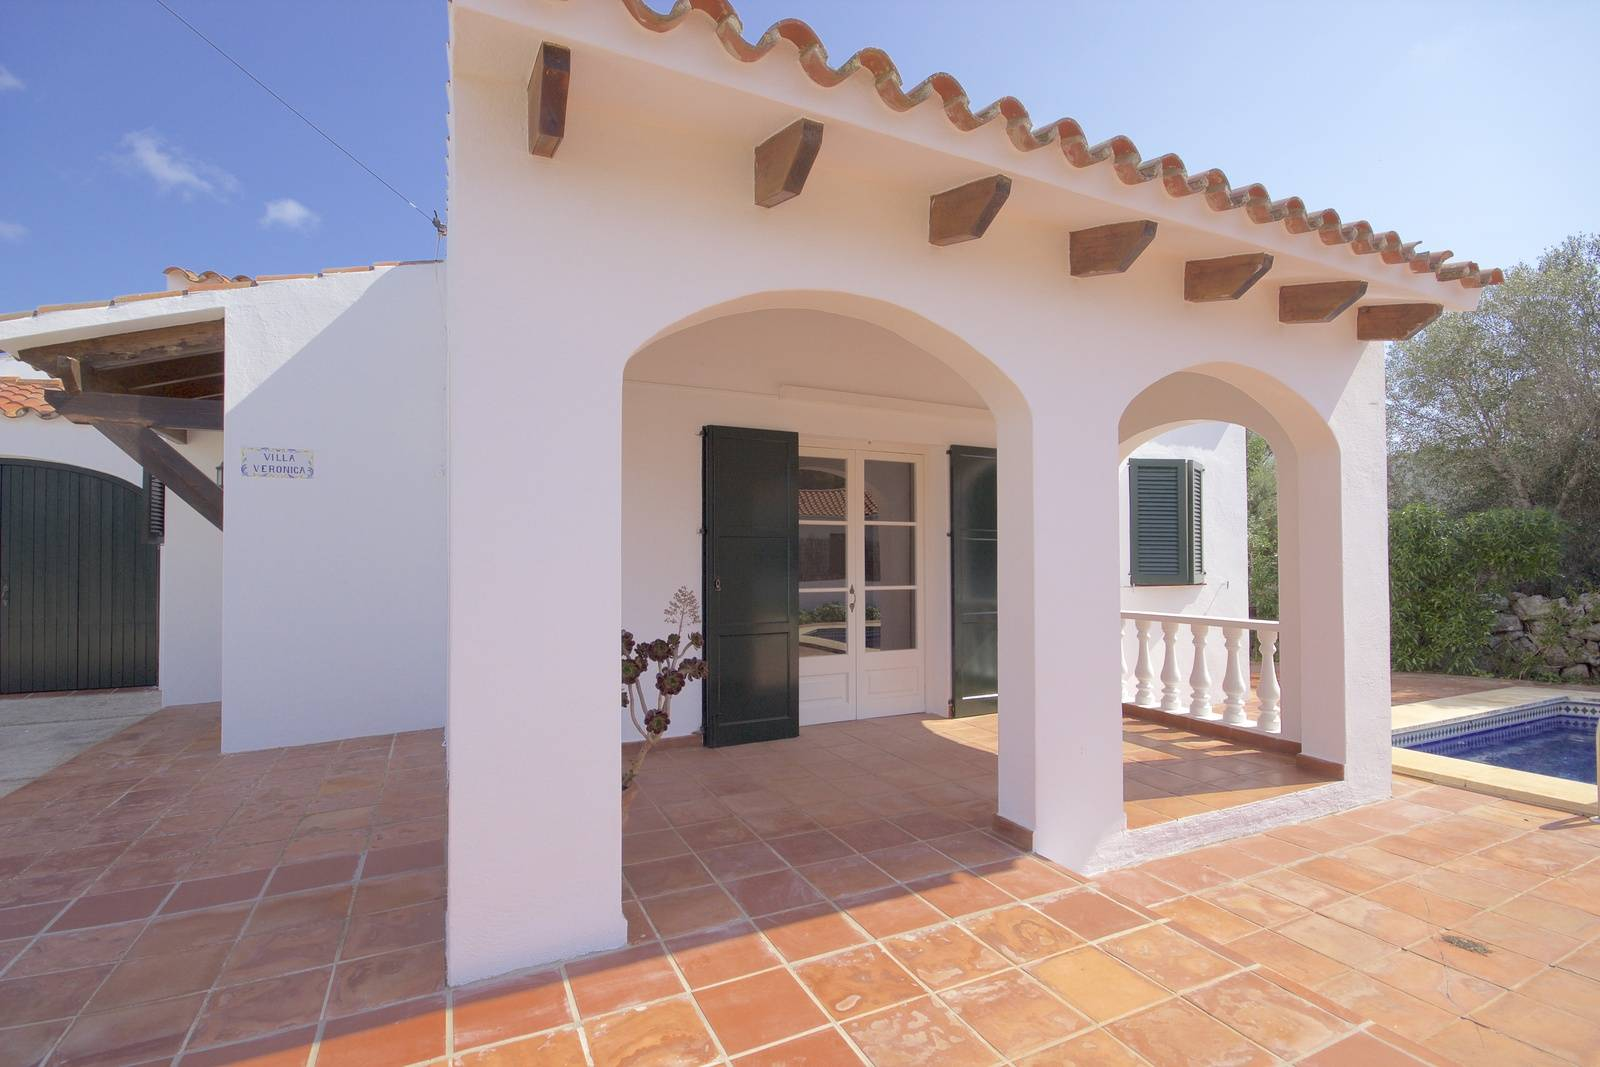 The most viewed house in bonnin sanso in march - Bonnin sanso menorca ...